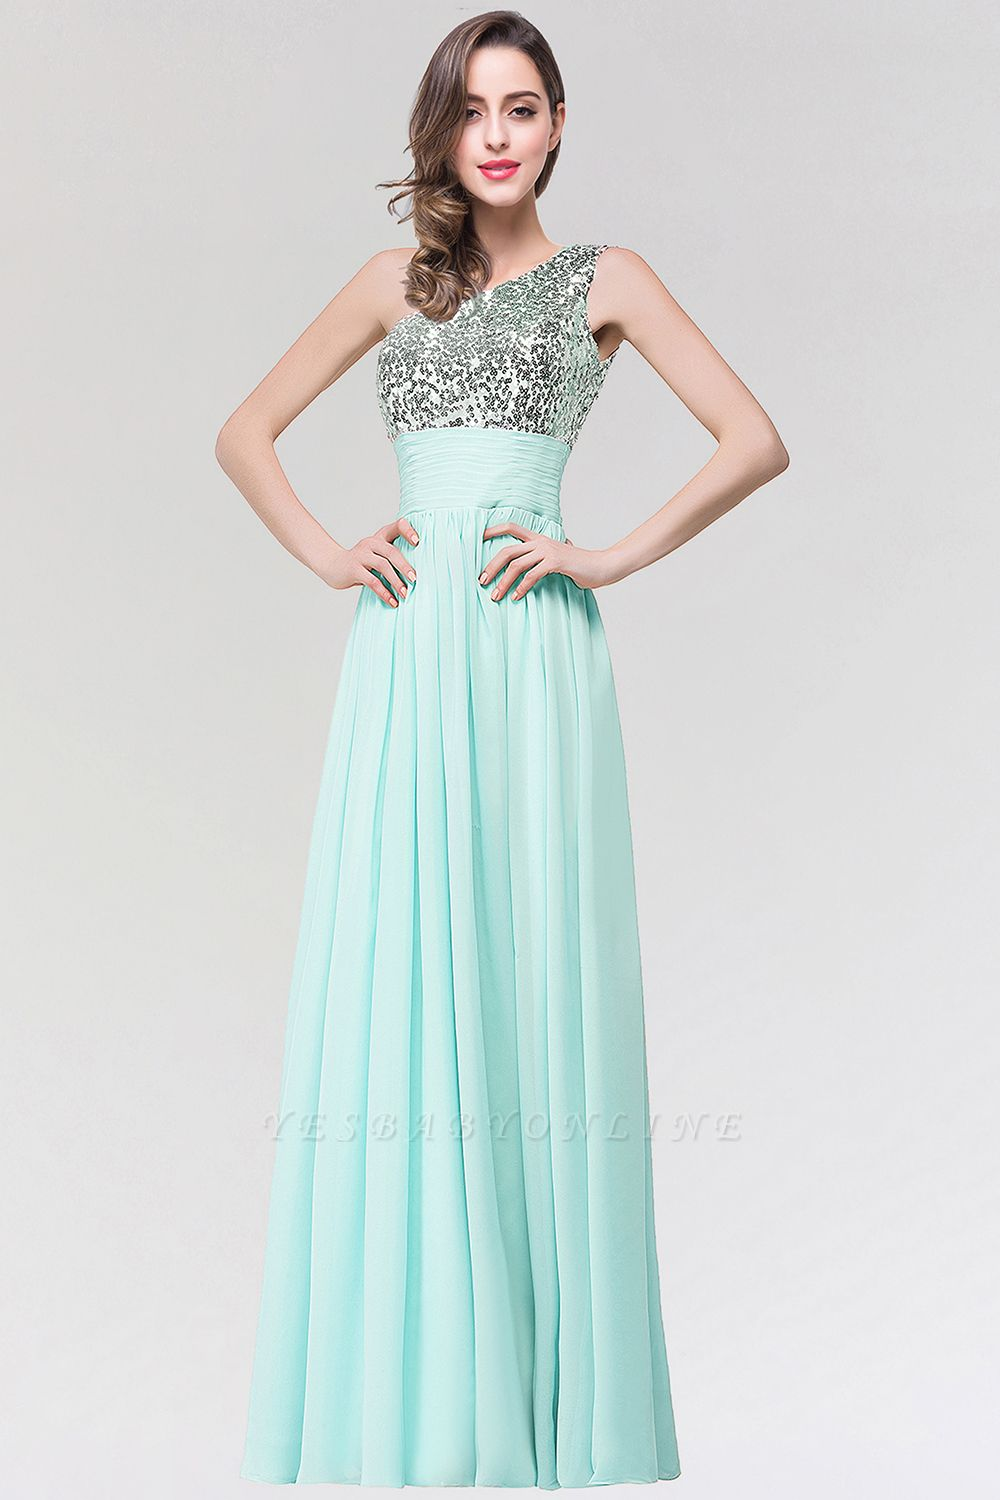 A-line  One-Shoulder Sleeveless Floor-Length Bridesmaid Dress with Sequins